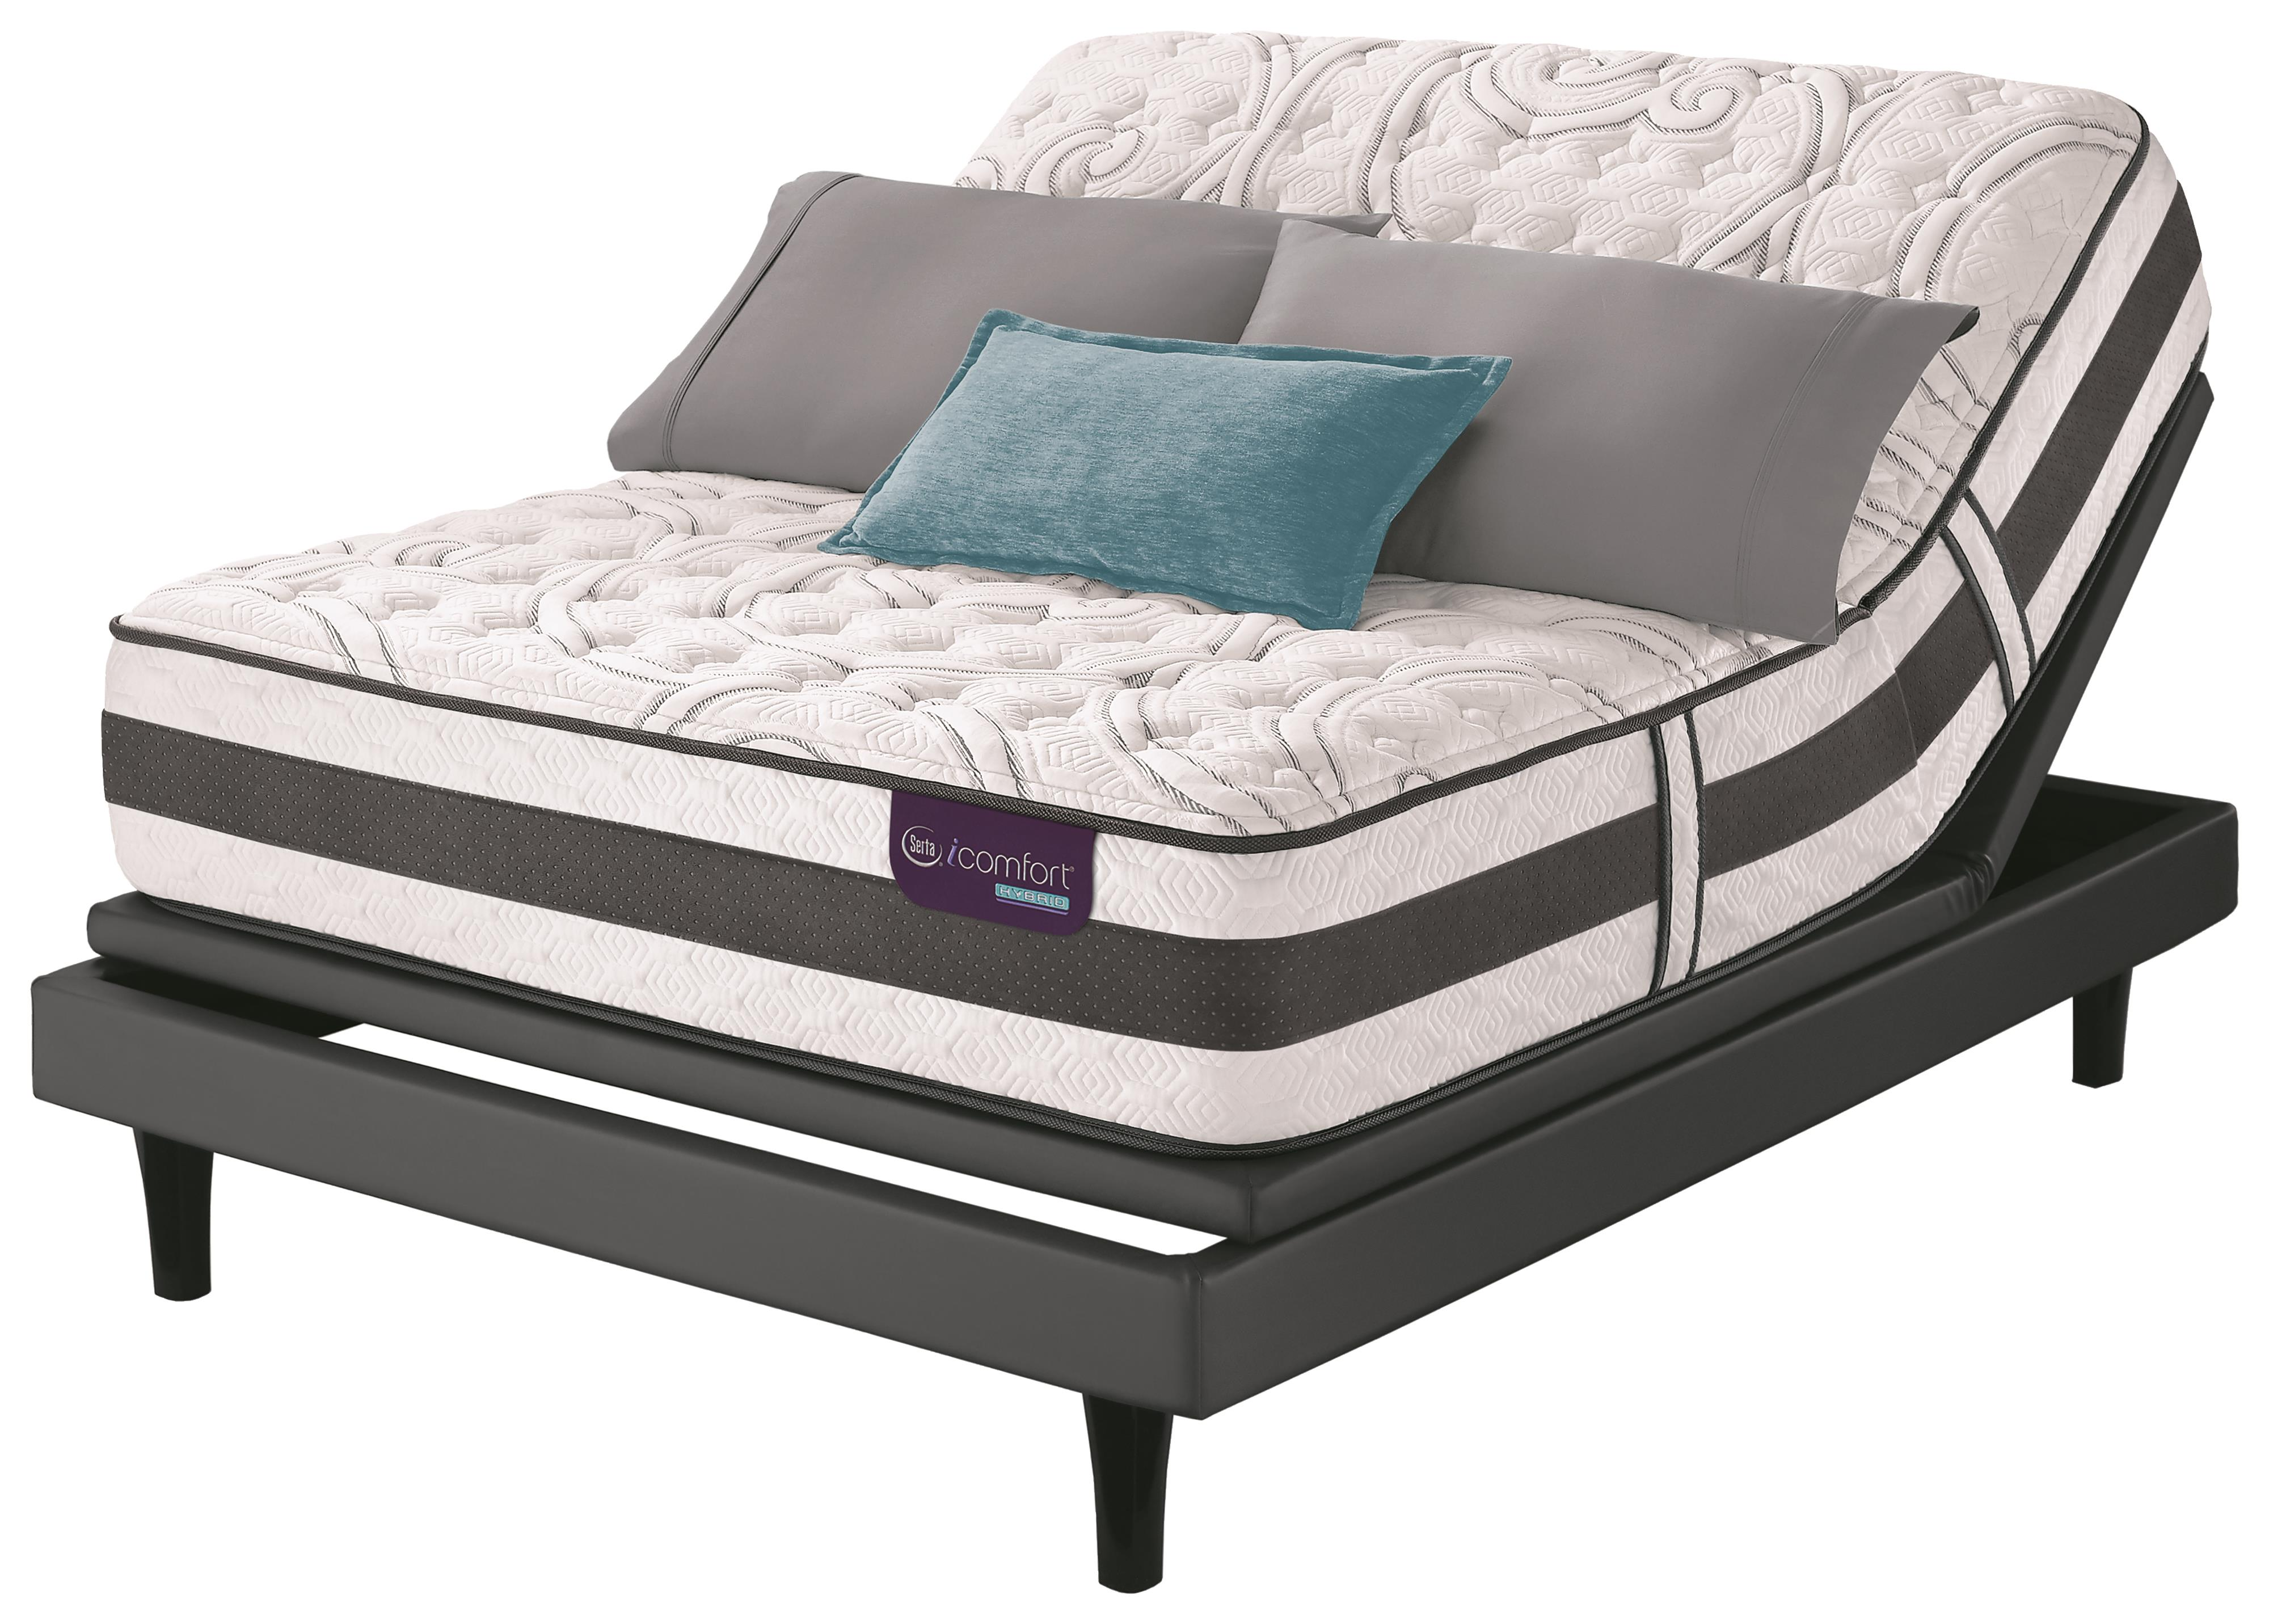 Serta iComfort Hybrid Applause II Full Firm Hybrid Quilted Matt Set, Adj - Item Number: ApplauseIIF-F+MPIII-F